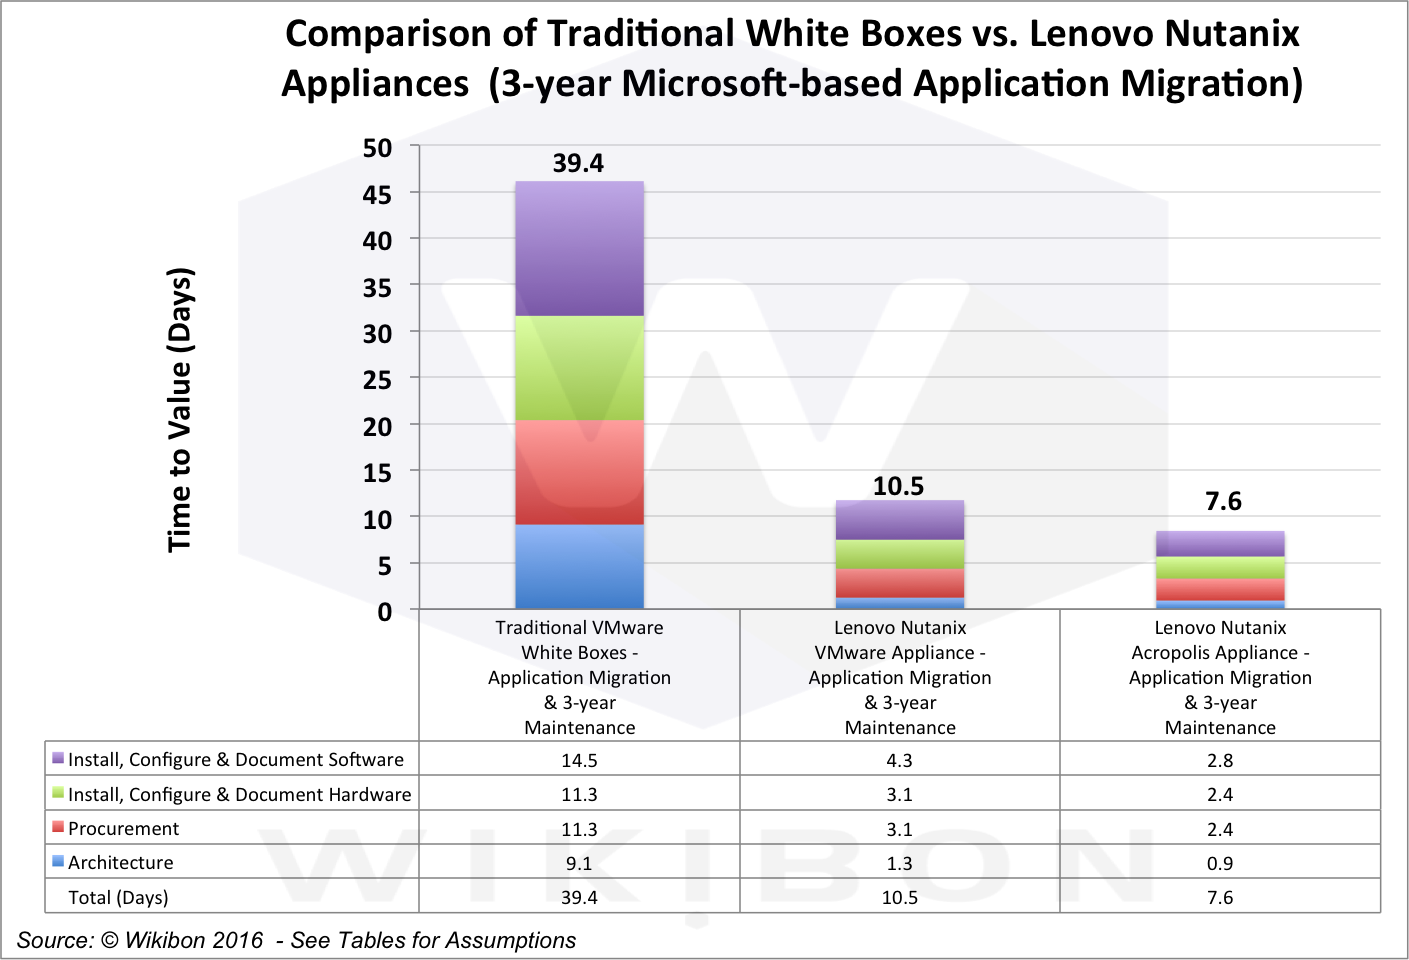 Figure 3 - 3-year Time-to-Value Analysis of Traditional VMware White Box, Lenovo/Nutanix with VMware and Lenovo/Nutanix with Acropolis Source: © Wikibon 2016See Table 3 in Footnotes for detailed assumptions